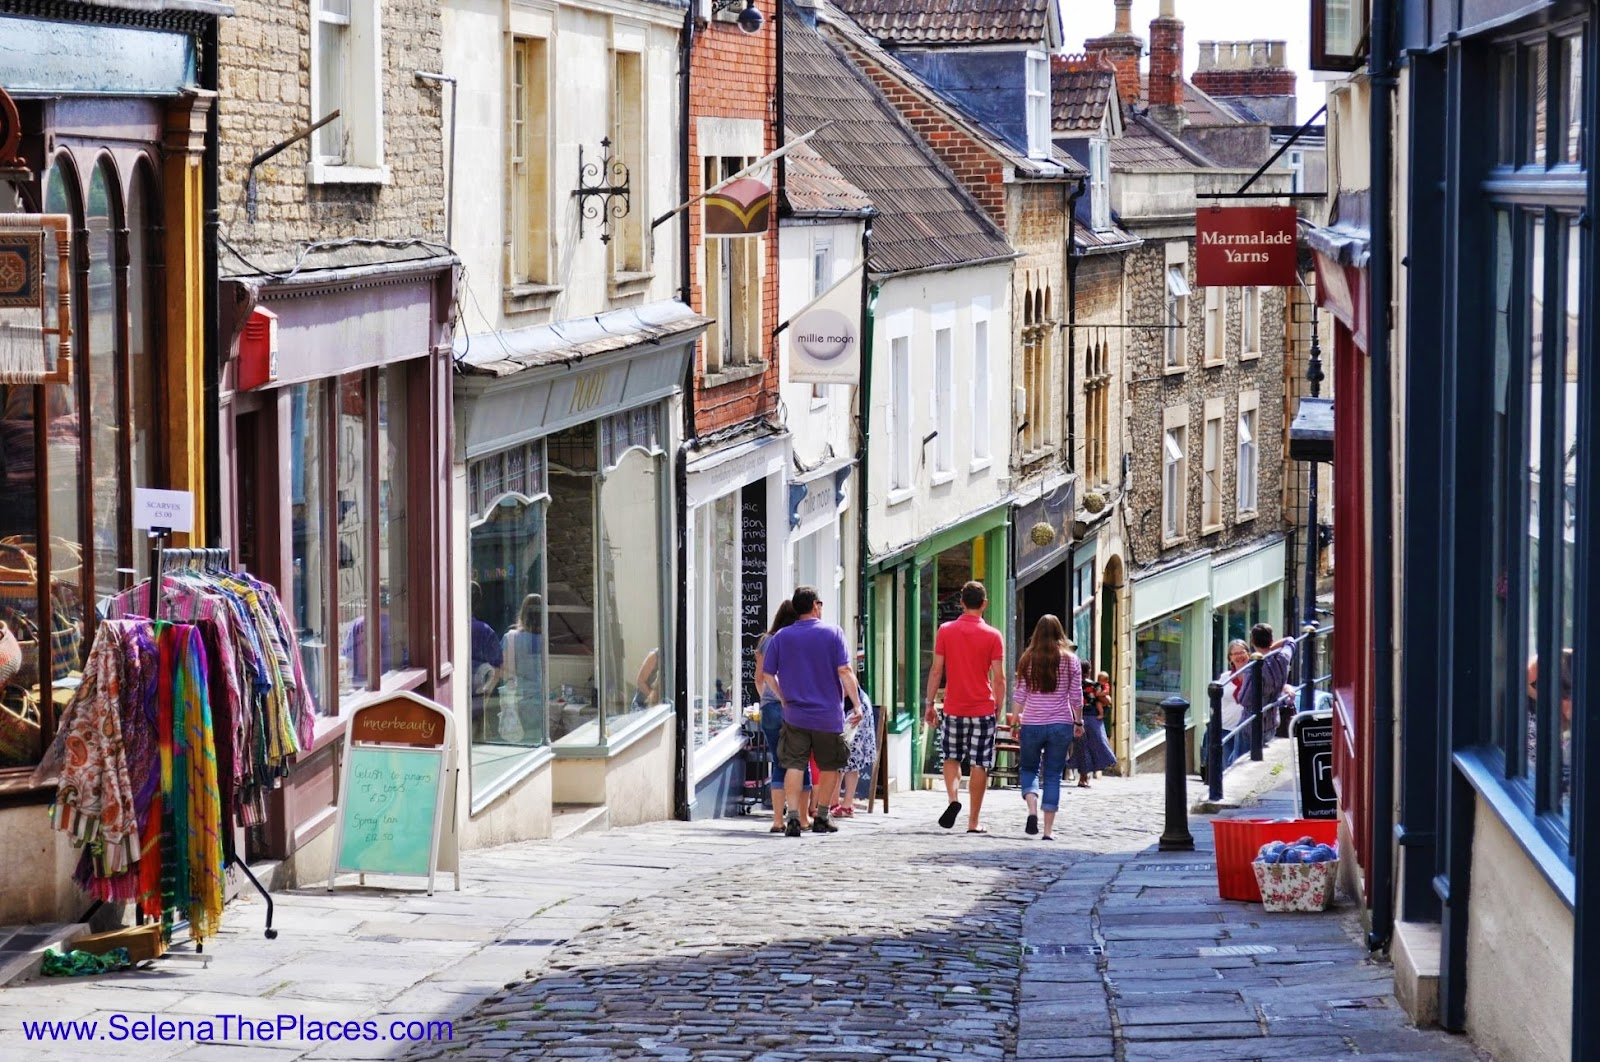 Oh, the places we will go!: Frome, a quirky little town in Somerset